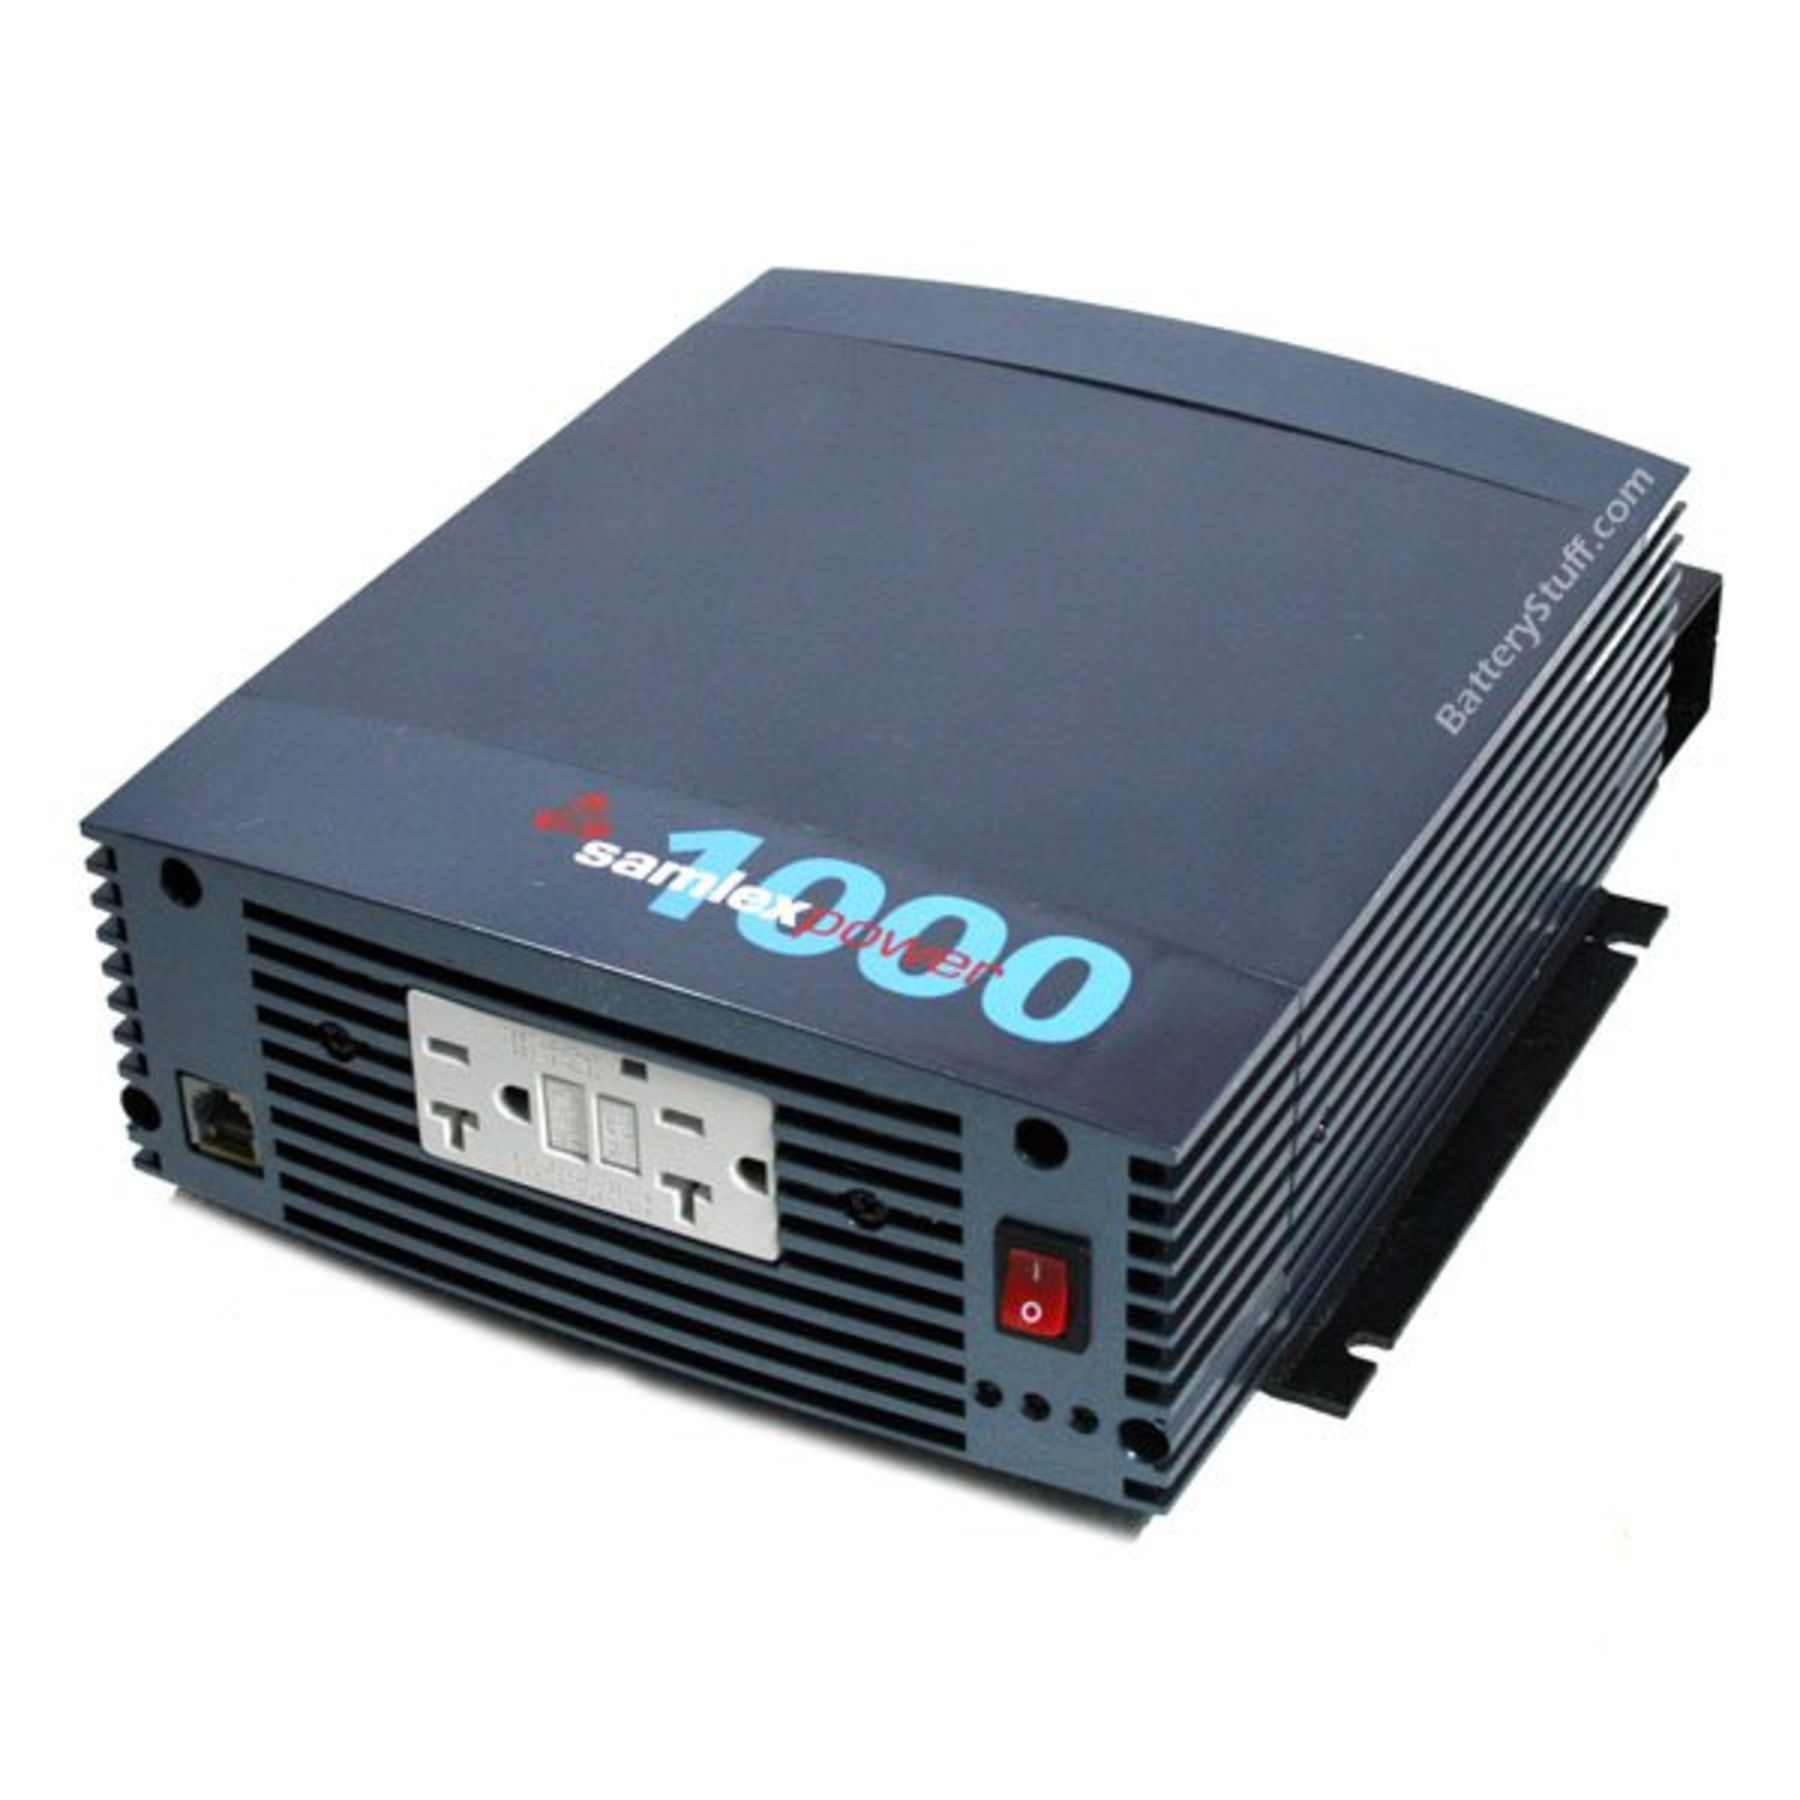 1000 Watt Pure Sine Wave Inverter Samlex 12v 1000 Watt Pure Sine Wave Inverter Ssw 1000 12a